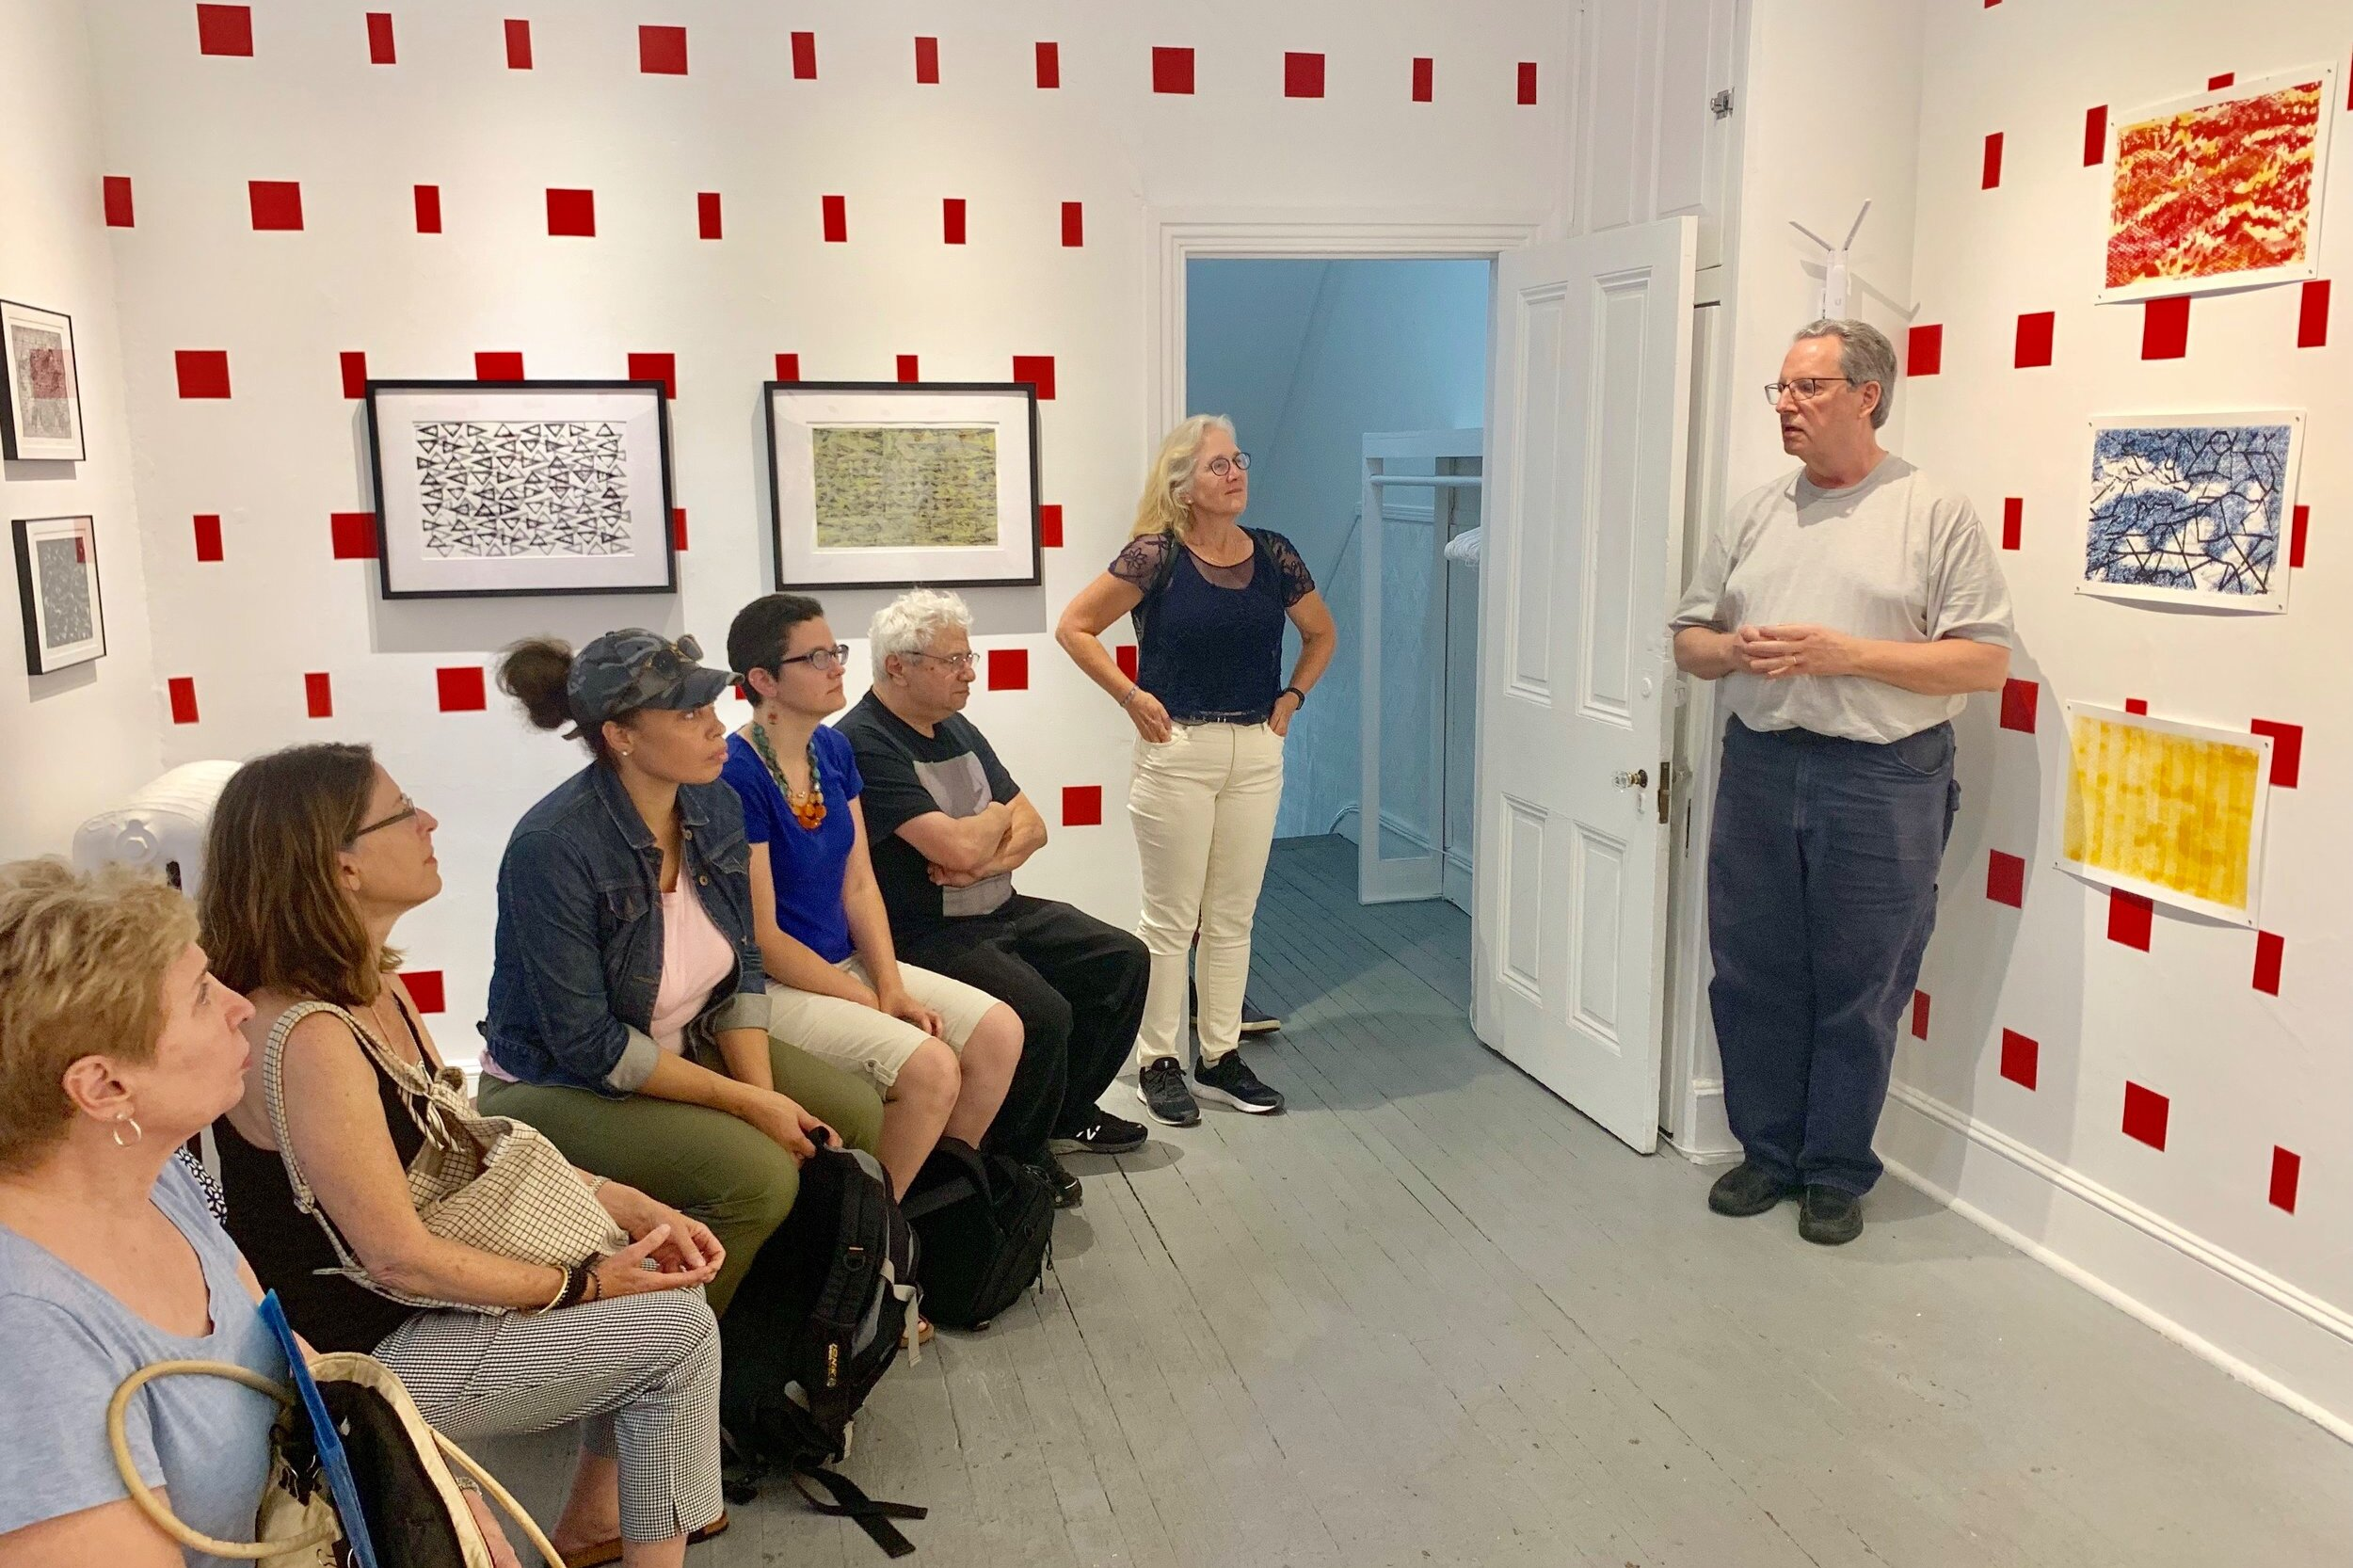 DVAA member, Bill Brookover, talking about his exhibition at DVAA.